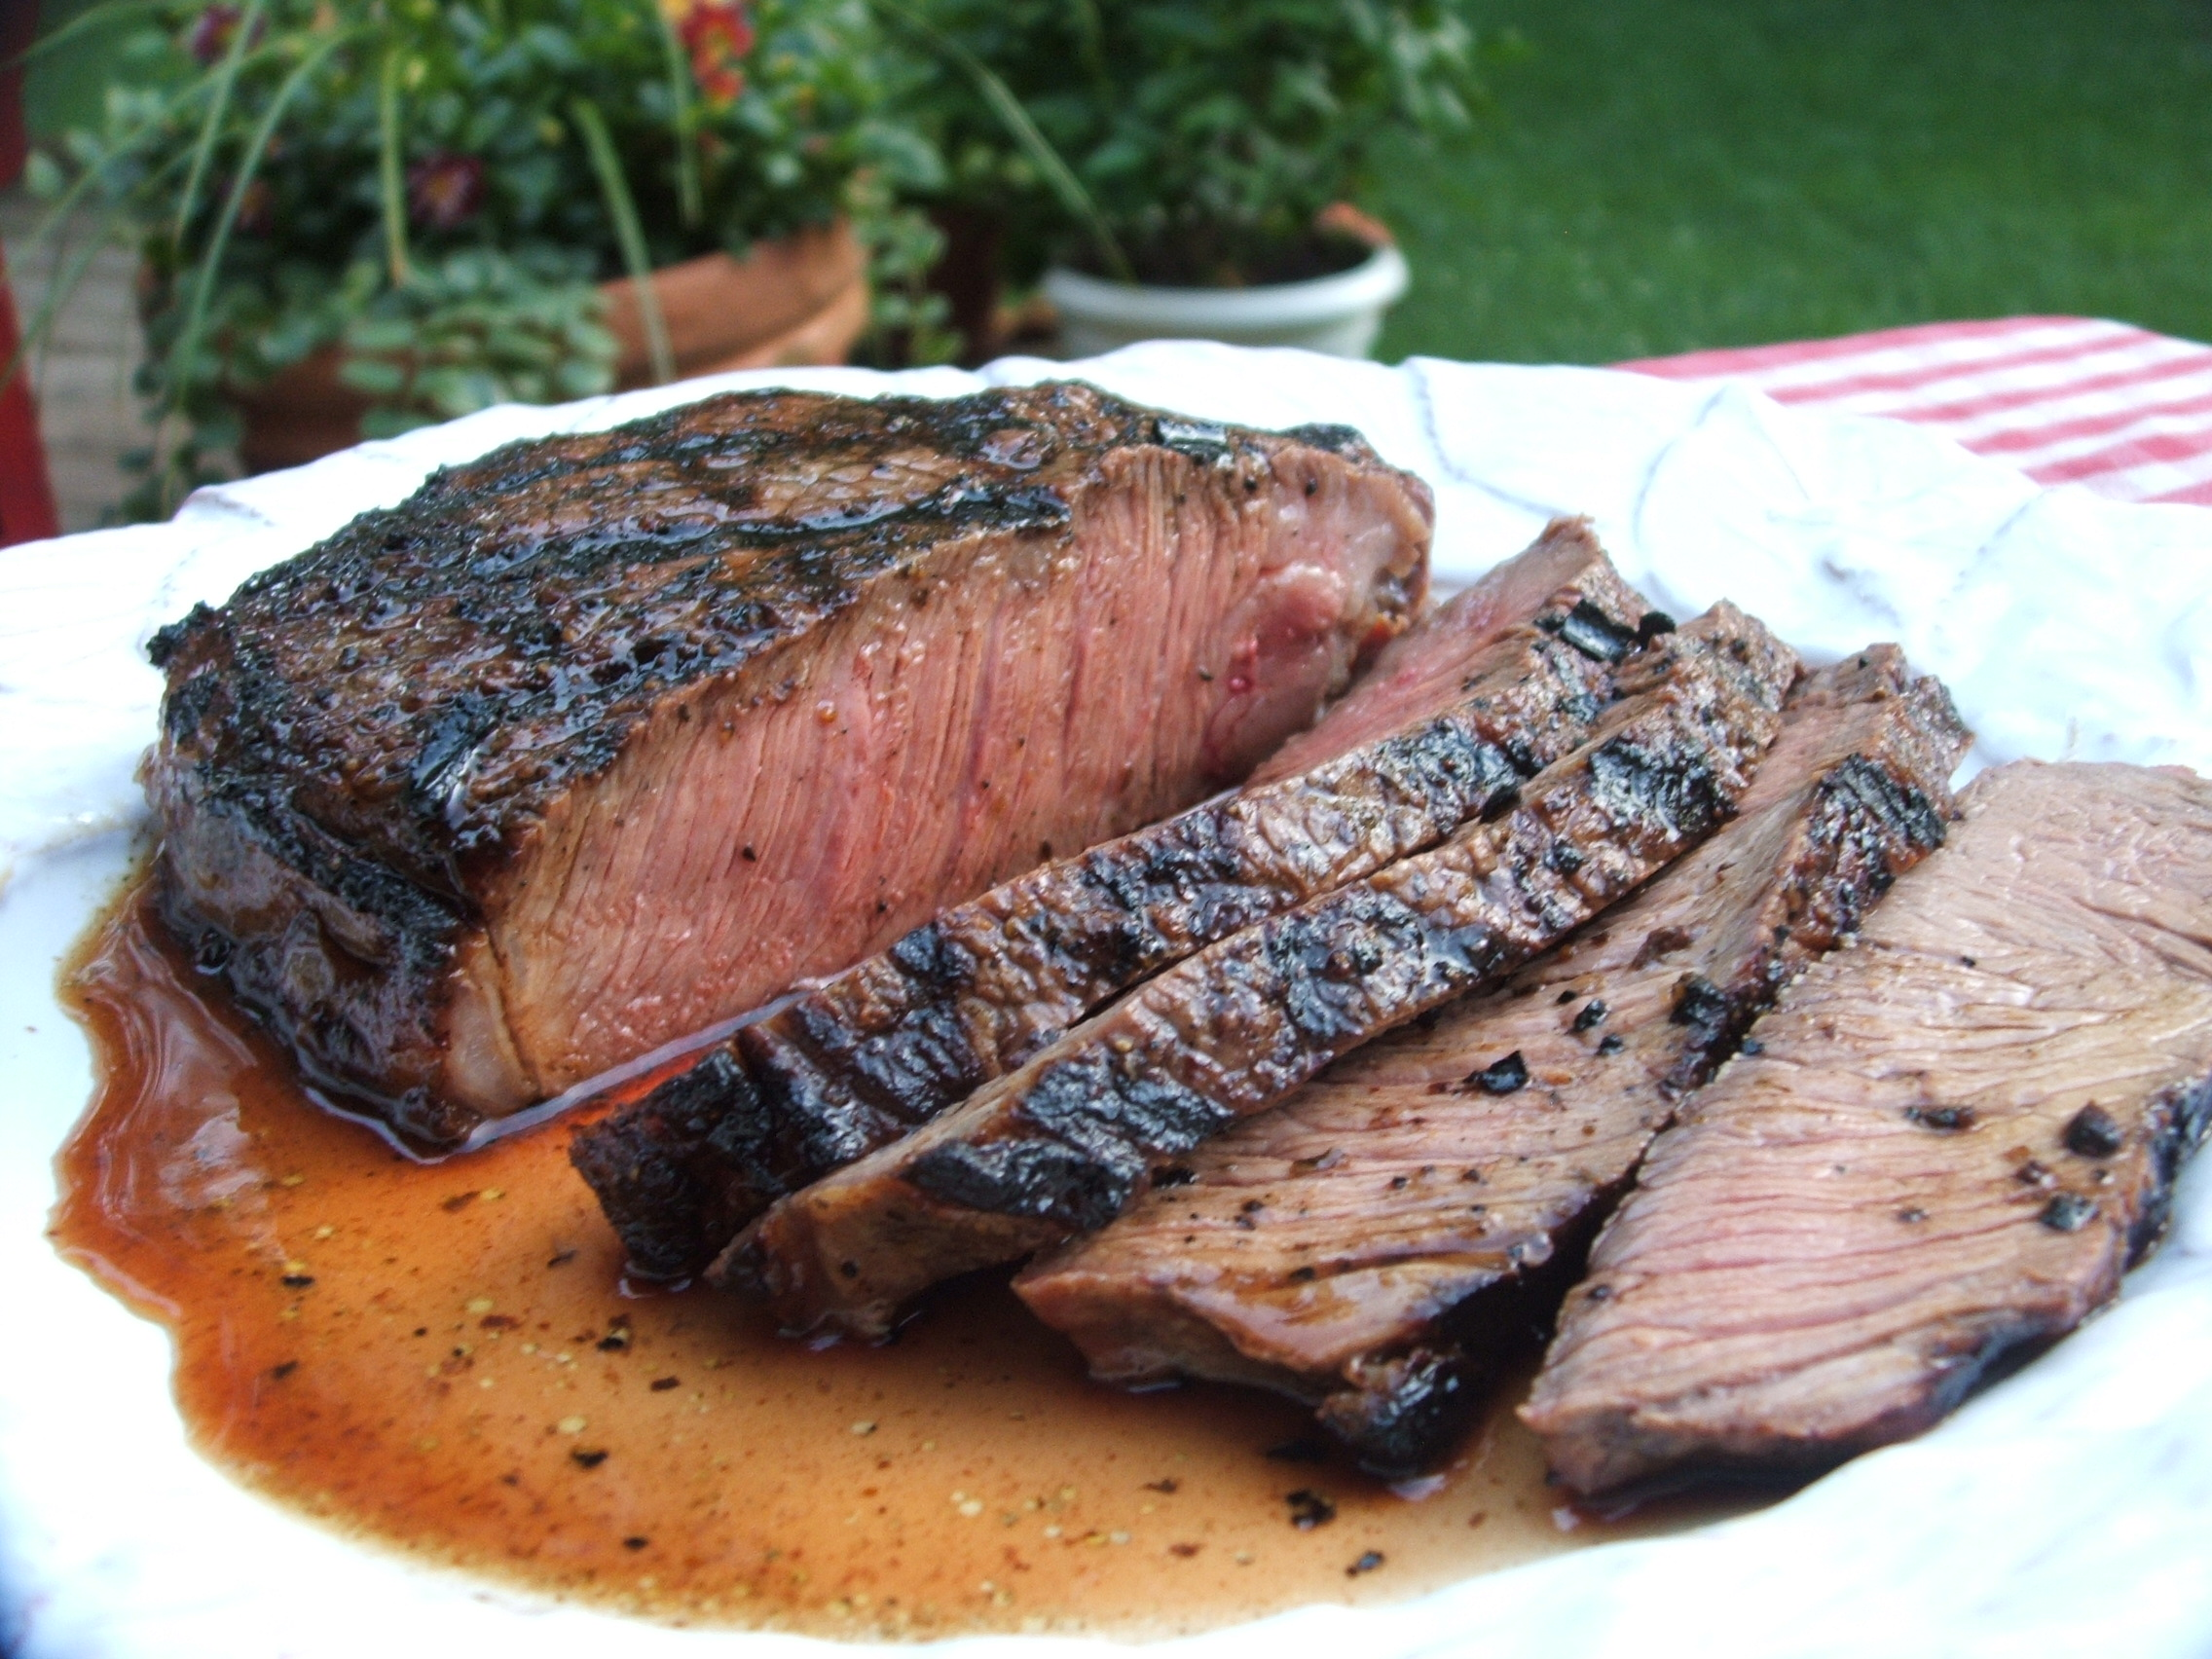 Simple Grilled Steak with Rub | Tasty Kitchen: A Happy ...